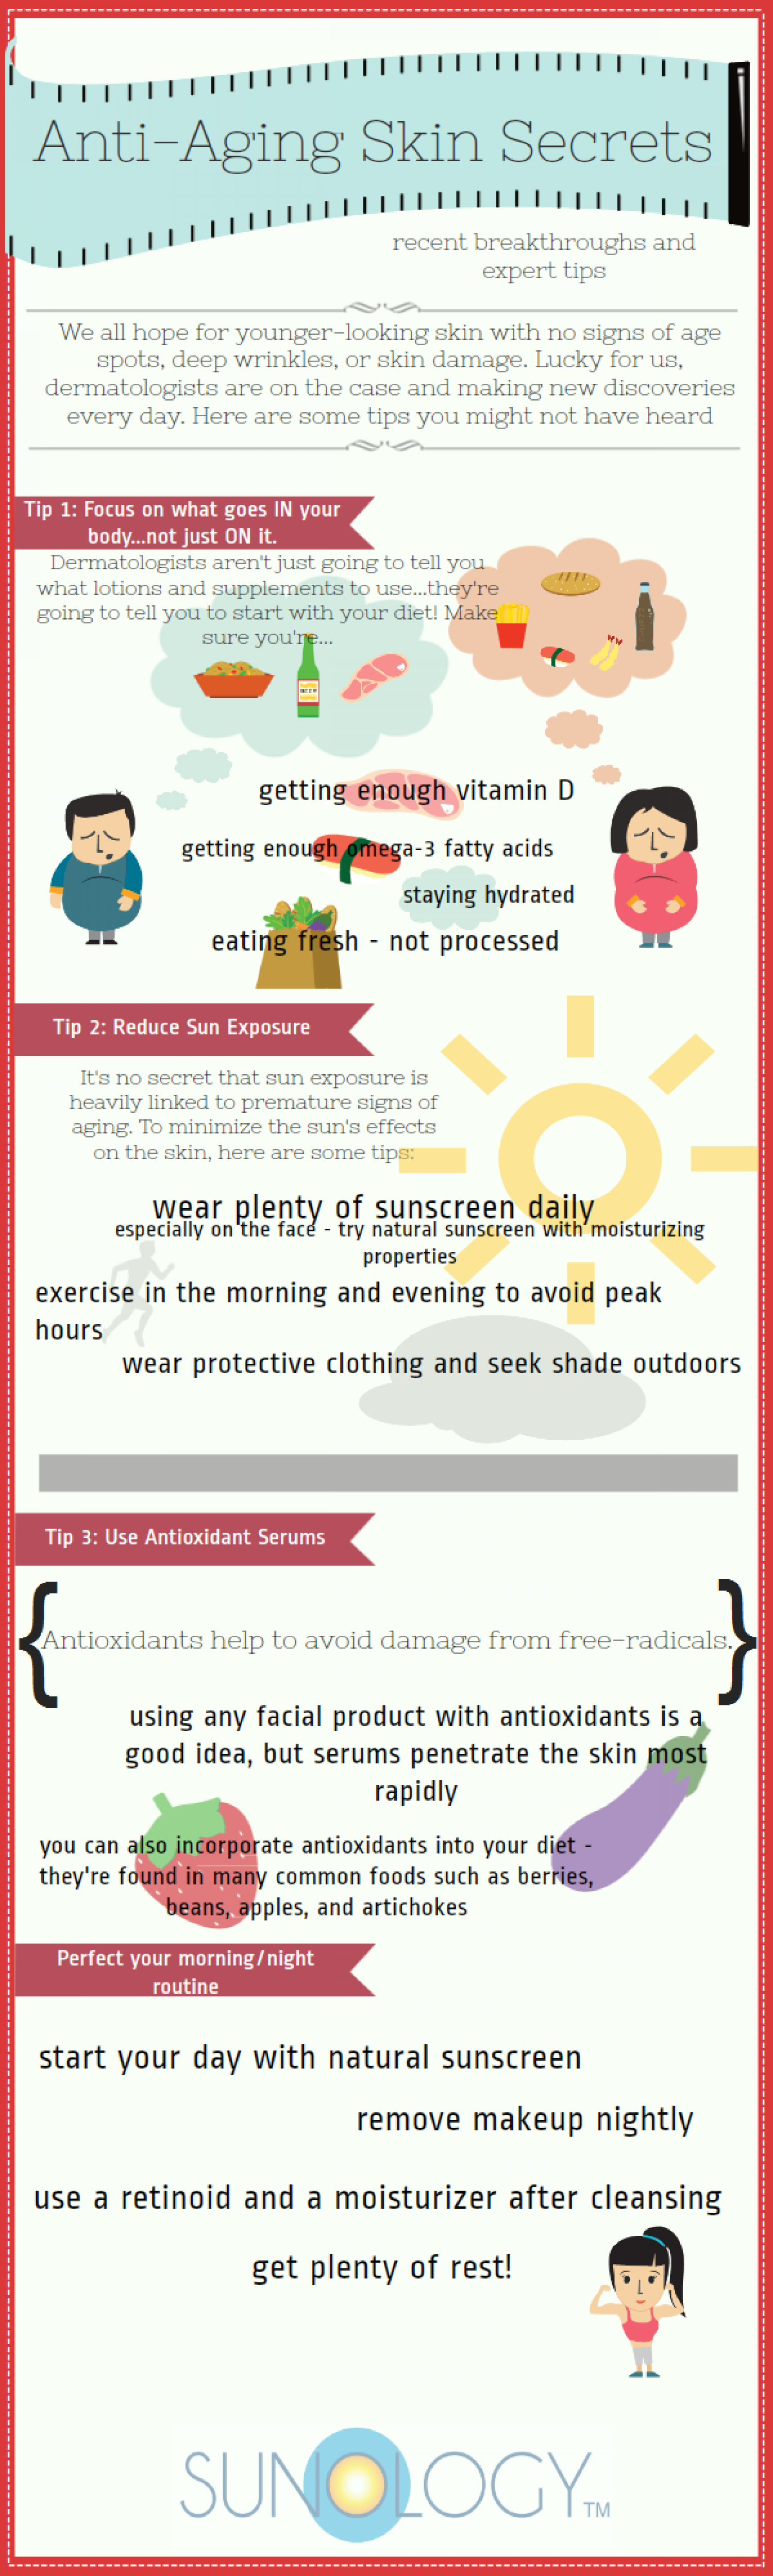 Anti-aging skin secrets Infographic